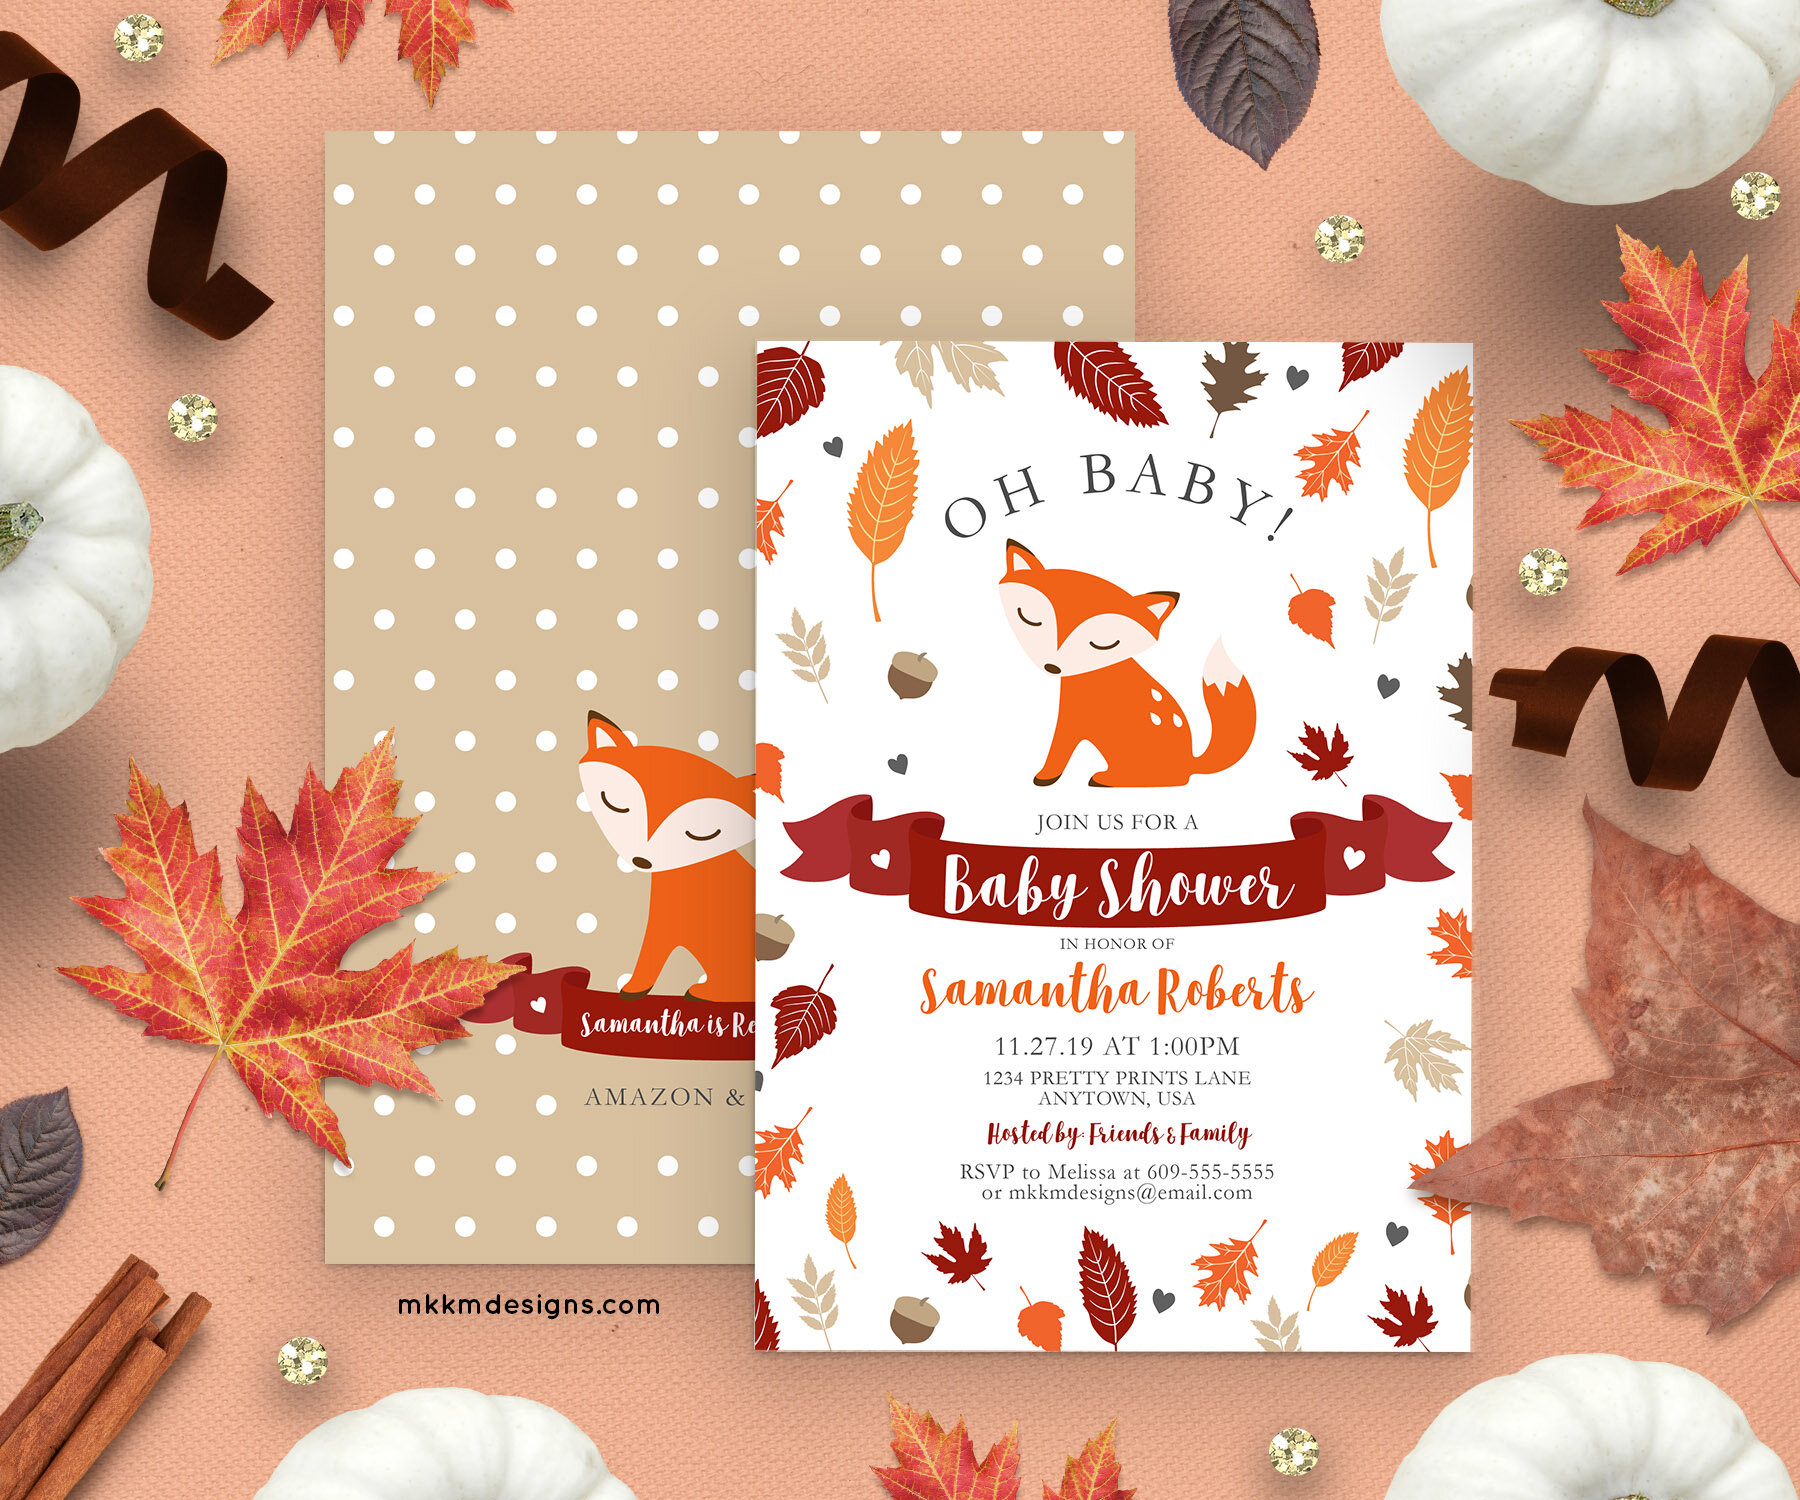 Fox Baby Shower Invitations from mkkmdesigns. These rustic fall themed invites are perfect for a gender neutral baby shower.